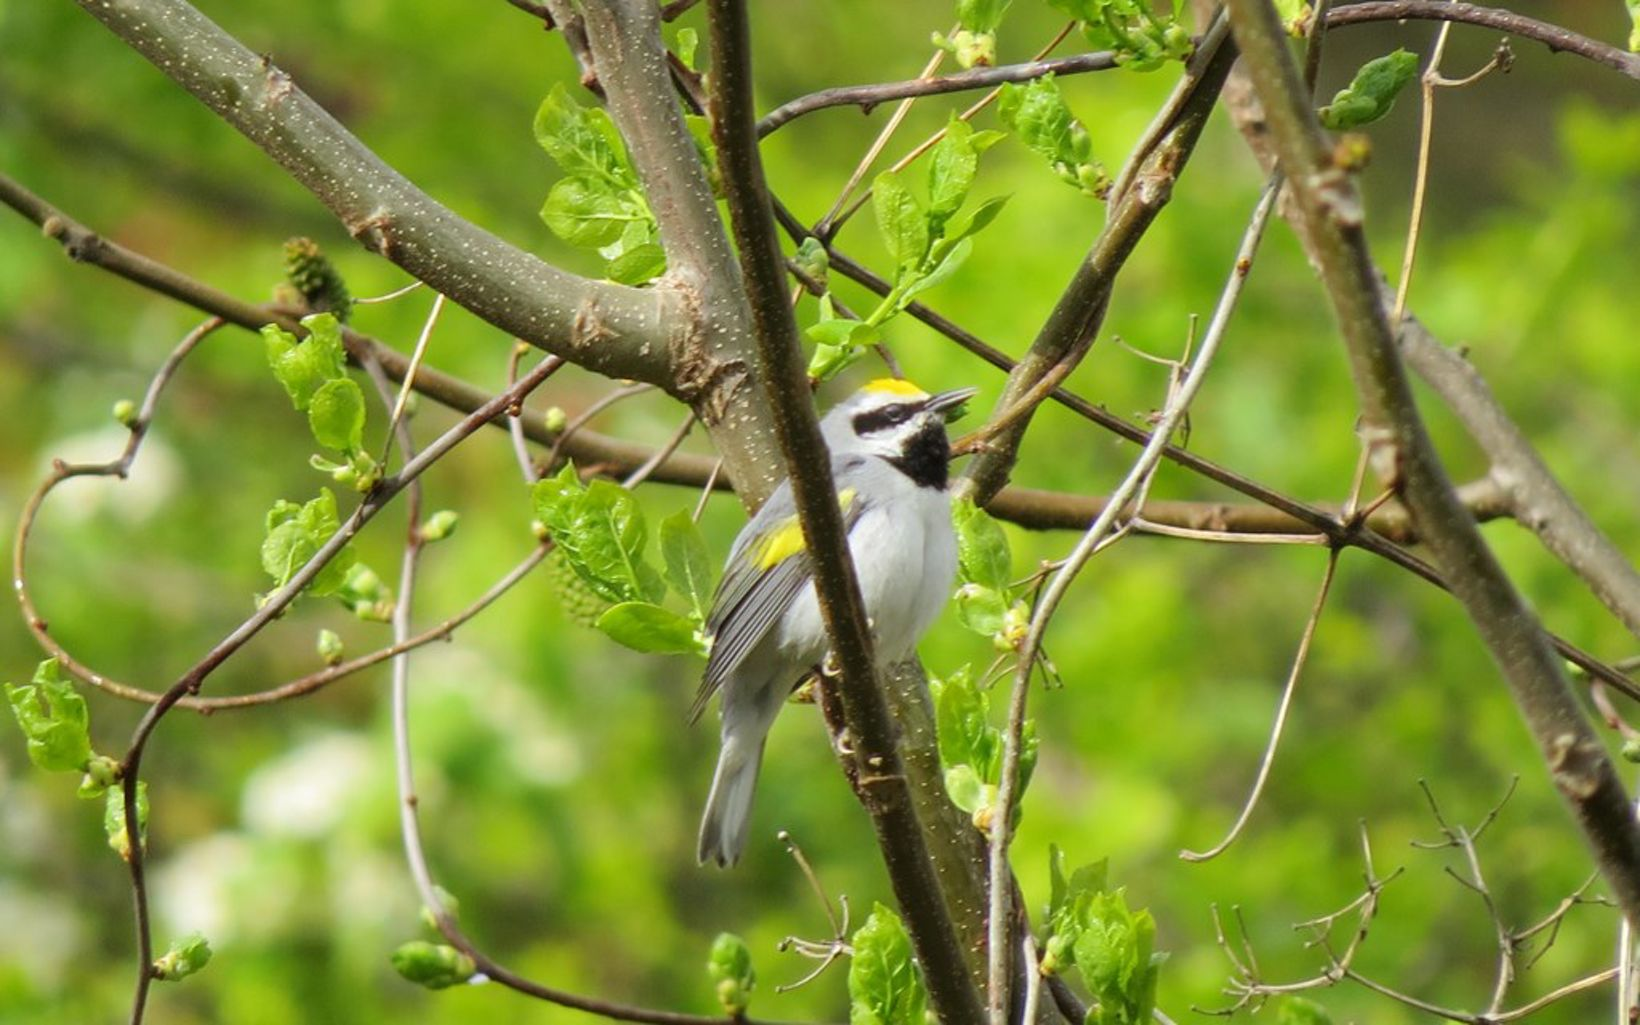 A gray and white bird with a golden cap and yellow flecks on its wings sits perched on a tree branch.